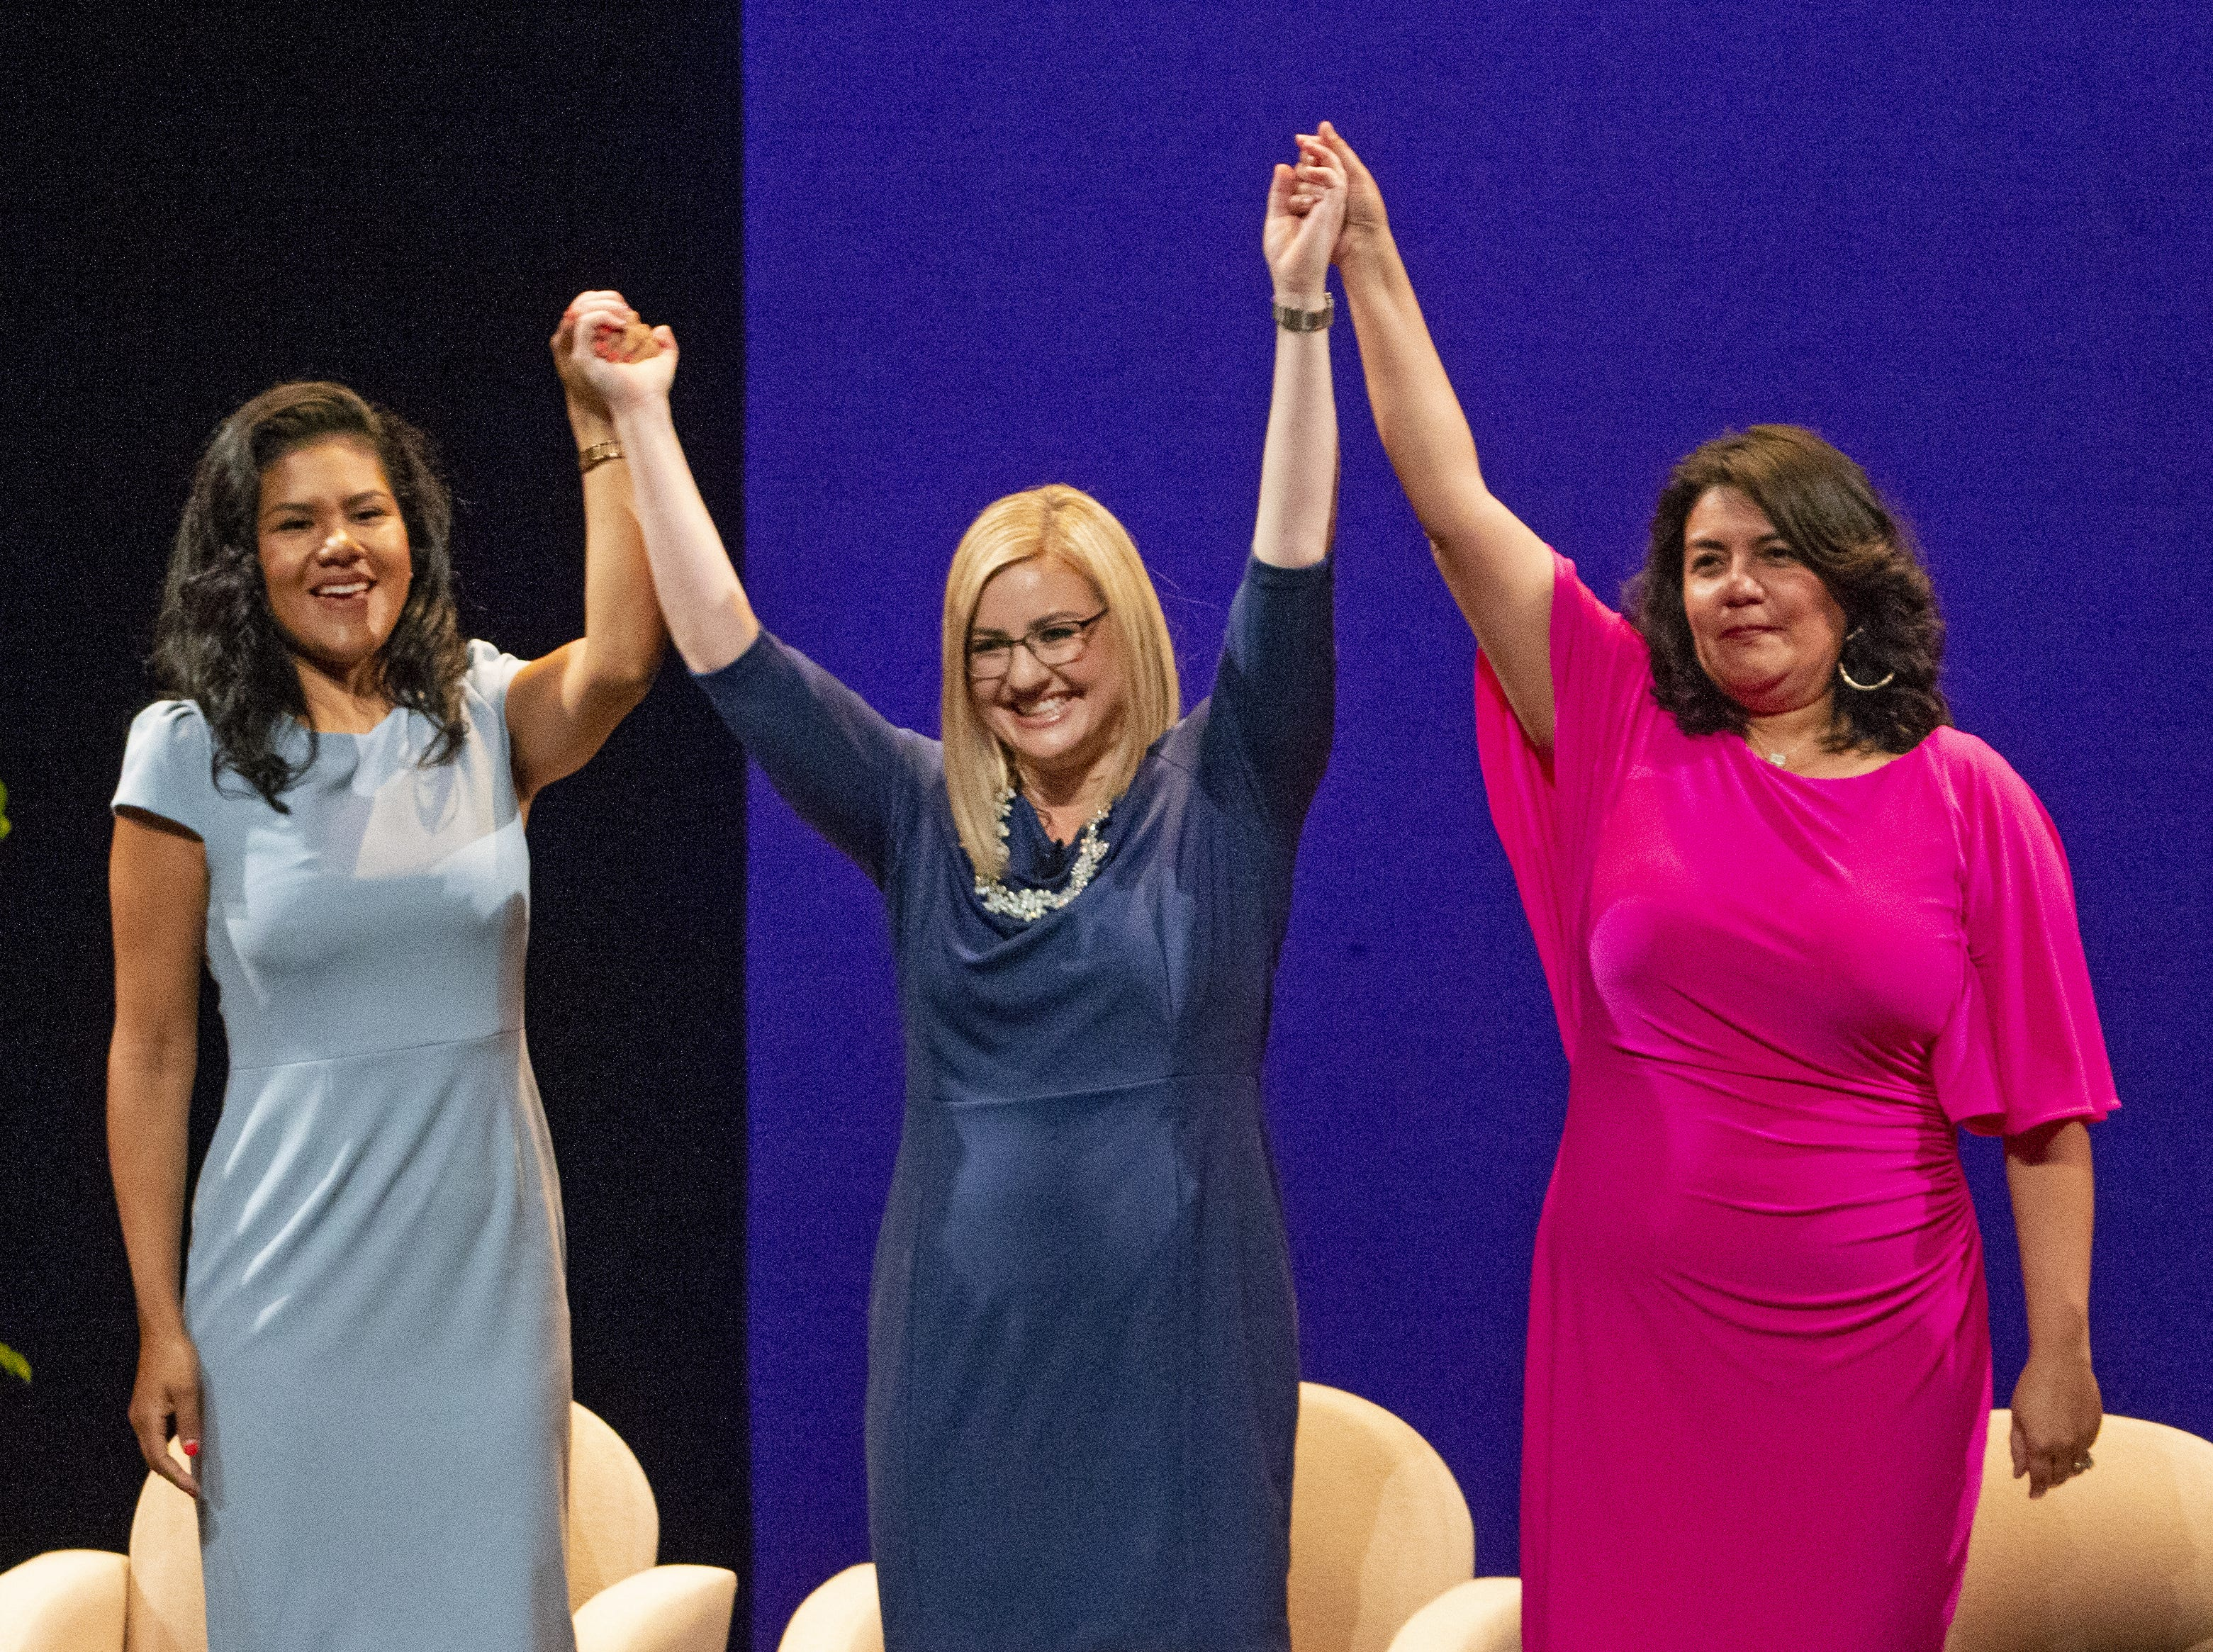 (from left to right) Councilwoman Varia Guevara, District 5; newly-inaugurated Phoenix Mayor Kate Gallego; and Councilwoman Laura Pastor, District 4 celebrate during Gallego's inauguration ceremony on March 21 at the Orpheum Theatre in Phoenix, Ariz.